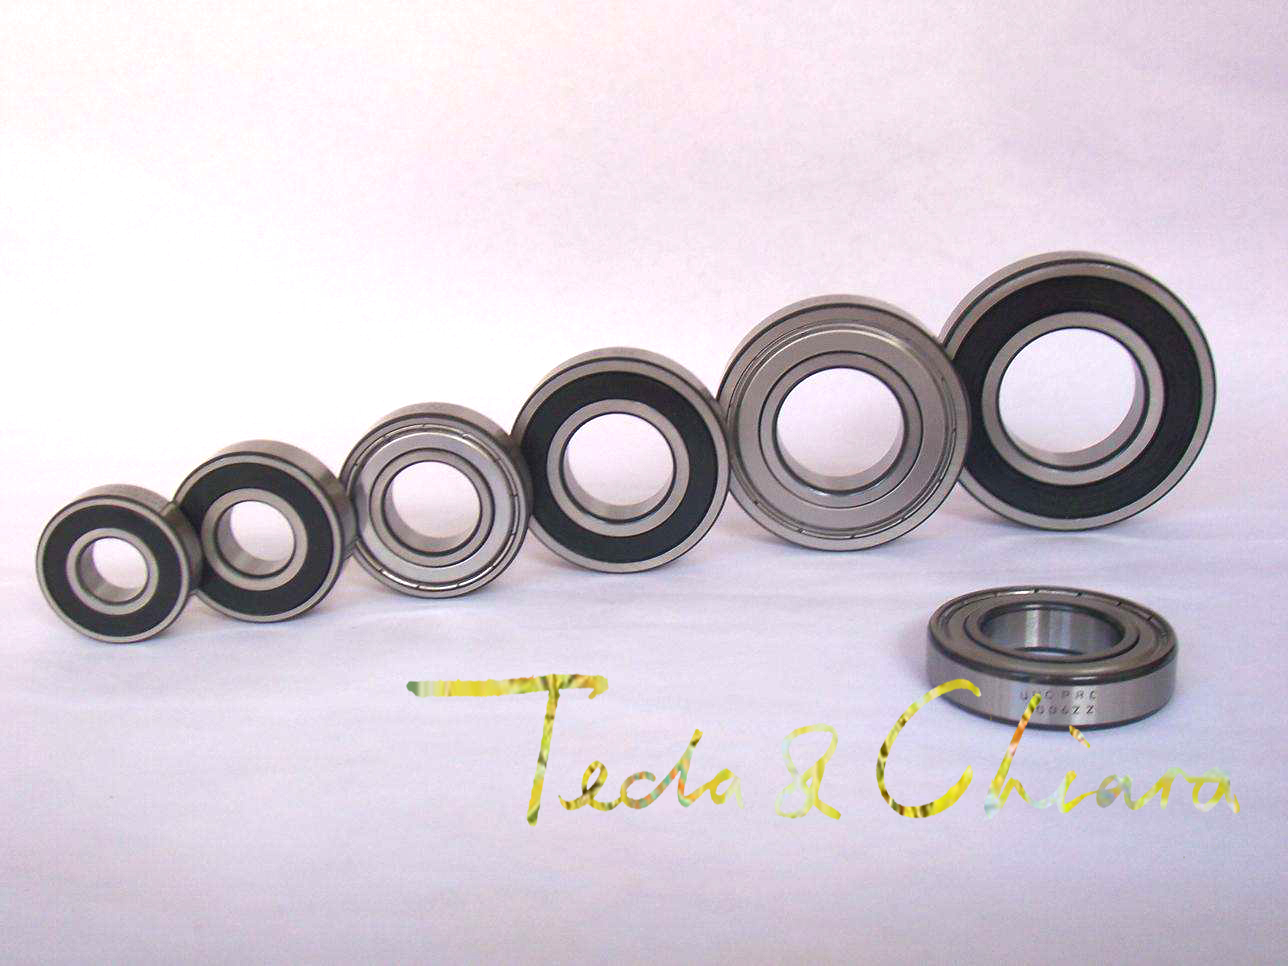 6000 6000ZZ 6000RS 6000-2Z 6000Z 6000-2RS ZZ RS RZ 2RZ Deep Groove Ball Bearings 10 x 26 x 8mm High Quality gcr15 6328 zz or 6328 2rs 140x300x62mm high precision deep groove ball bearings abec 1 p0